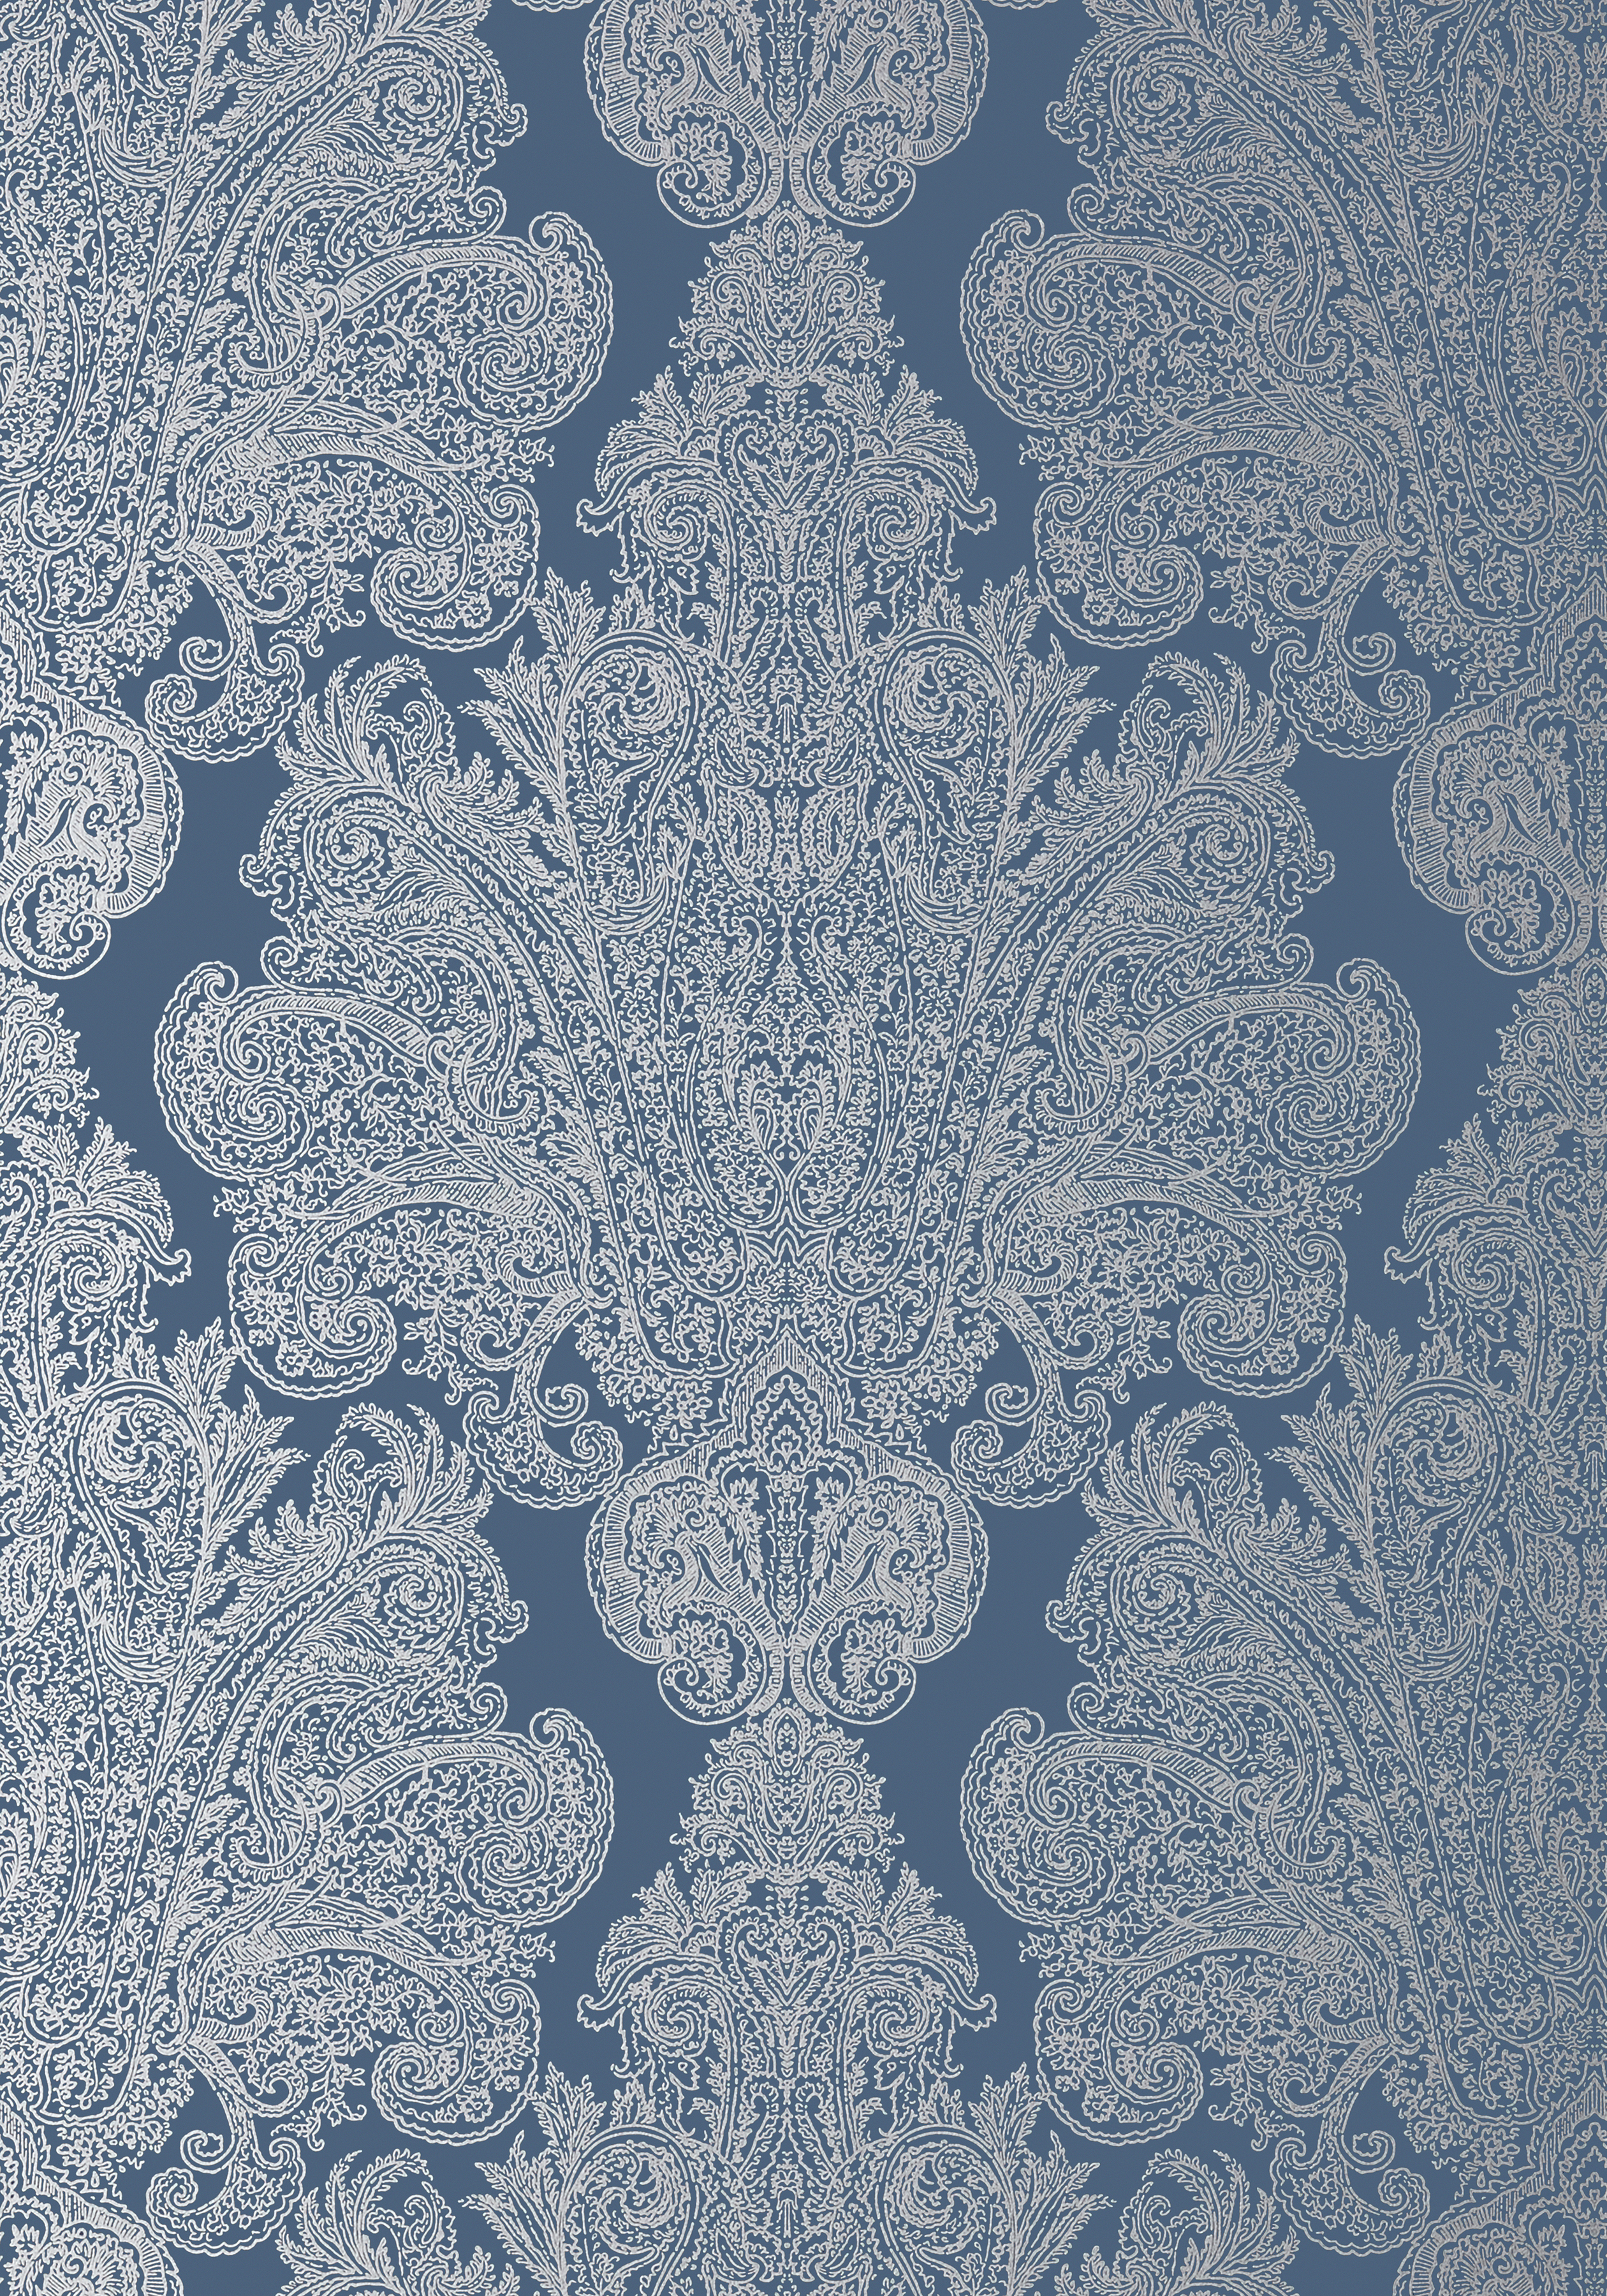 AUBURN-Metallic-Silver-on-Navy-AT-Collection-Serenade-from-Anna-French-wallpaper-wp3003366